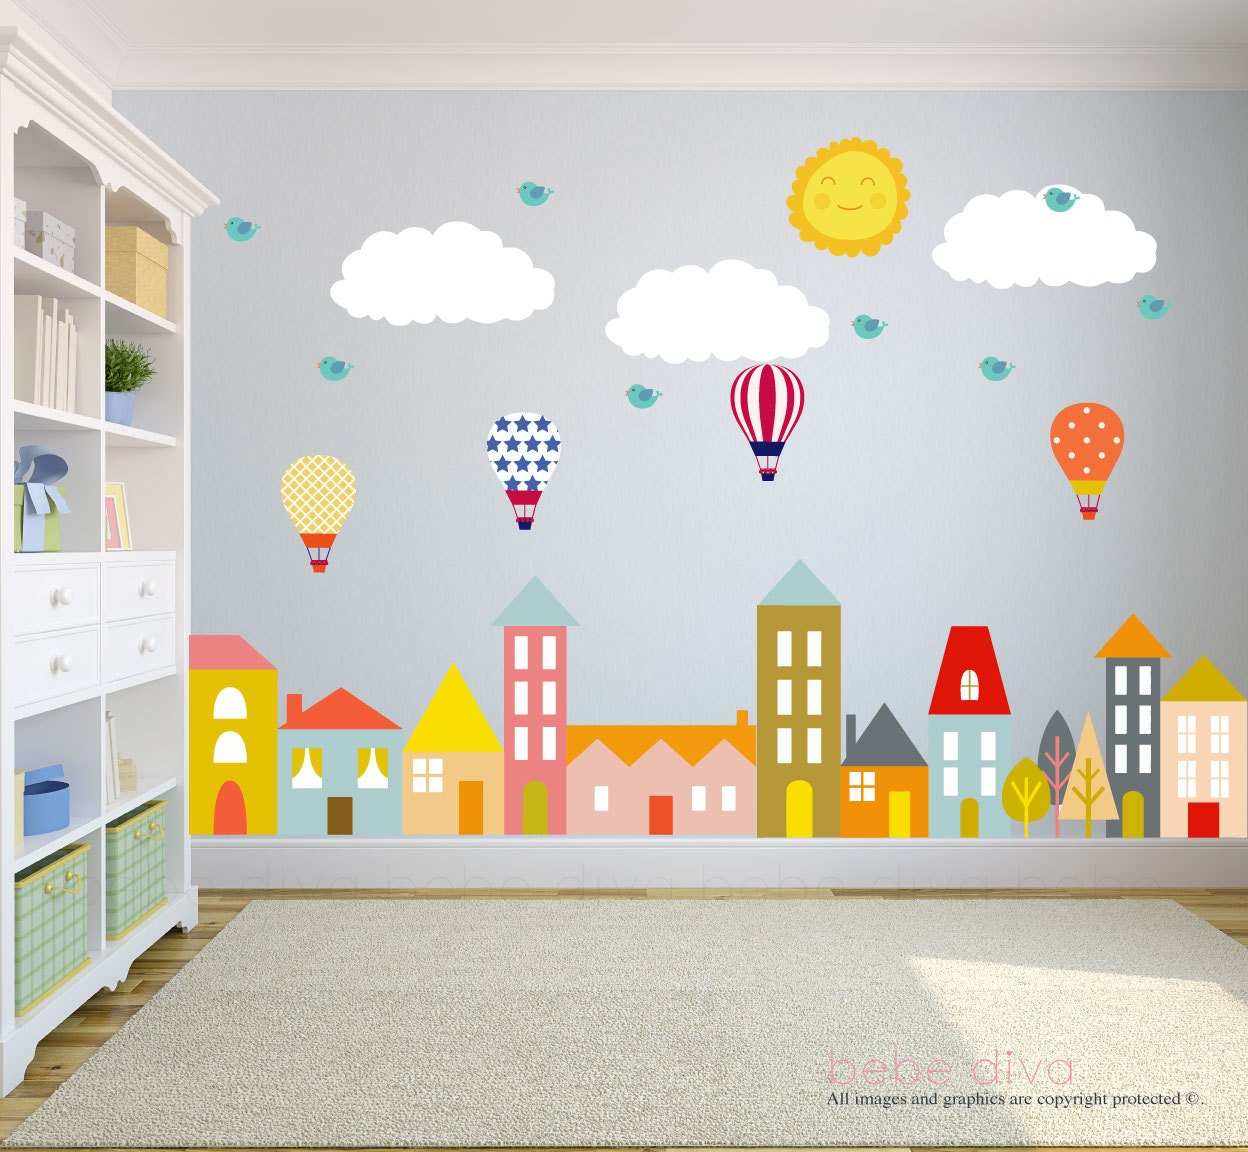 1000 Images About Ideas Para El Consultorio On Pinterest: City Wall Decals Nursery Wall Decal Wall Decals Nursery